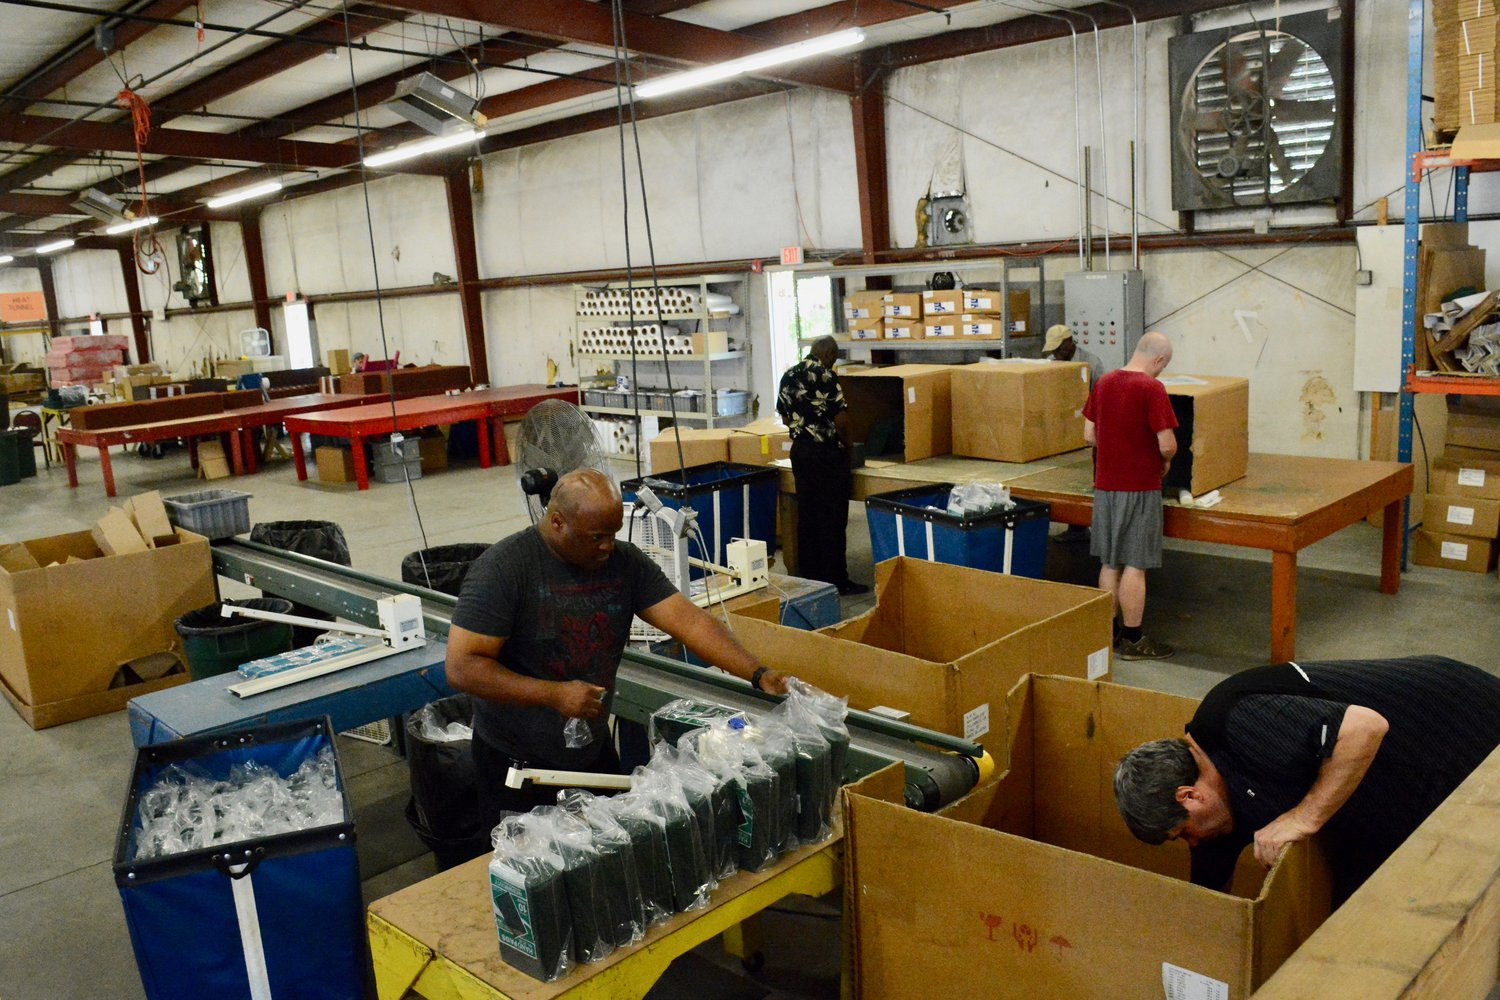 Lateef Onigbinde seals bags of sponges that are being packed and palletized by Ben Watkins for Americo Manufacturing.